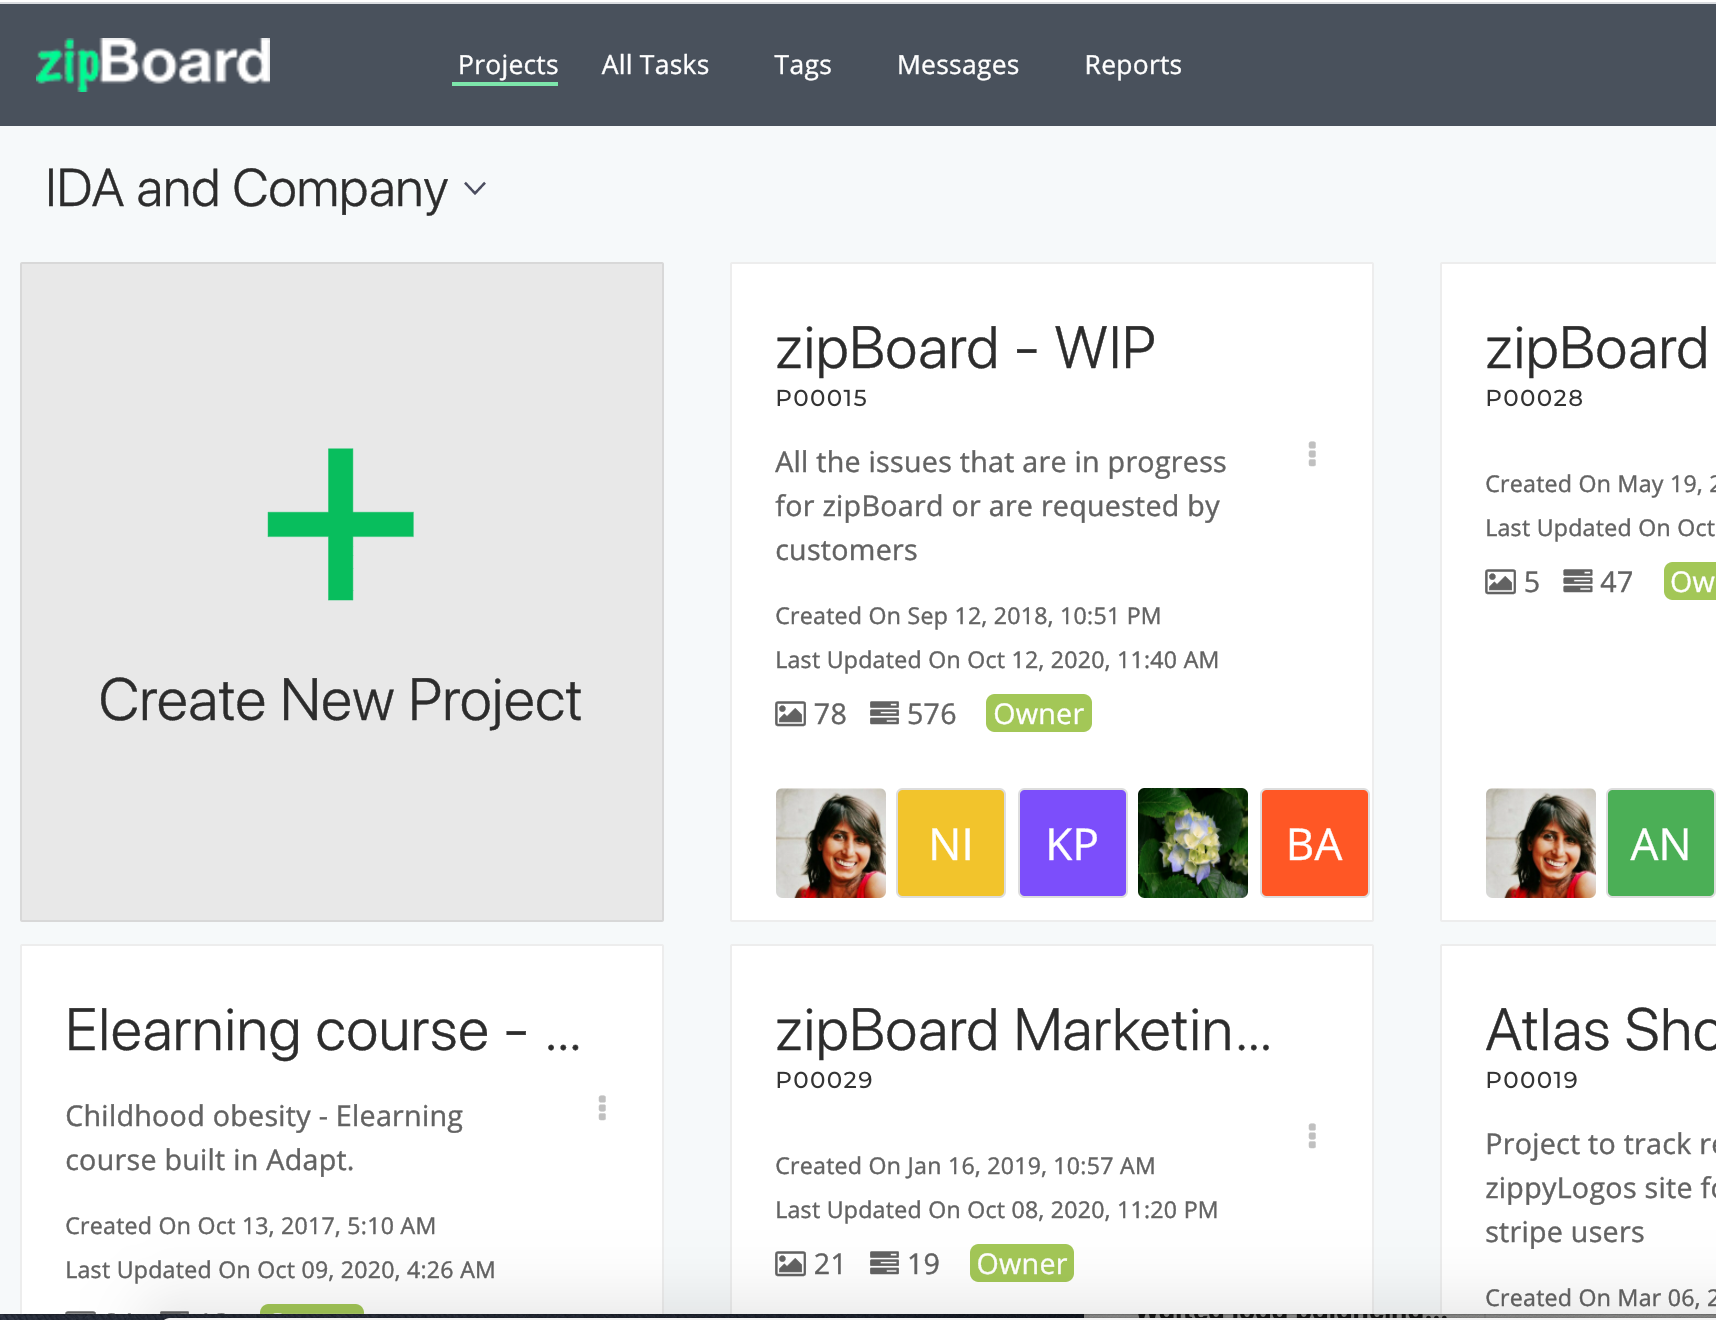 Manage separate client projects into separate projects for better tracking and management